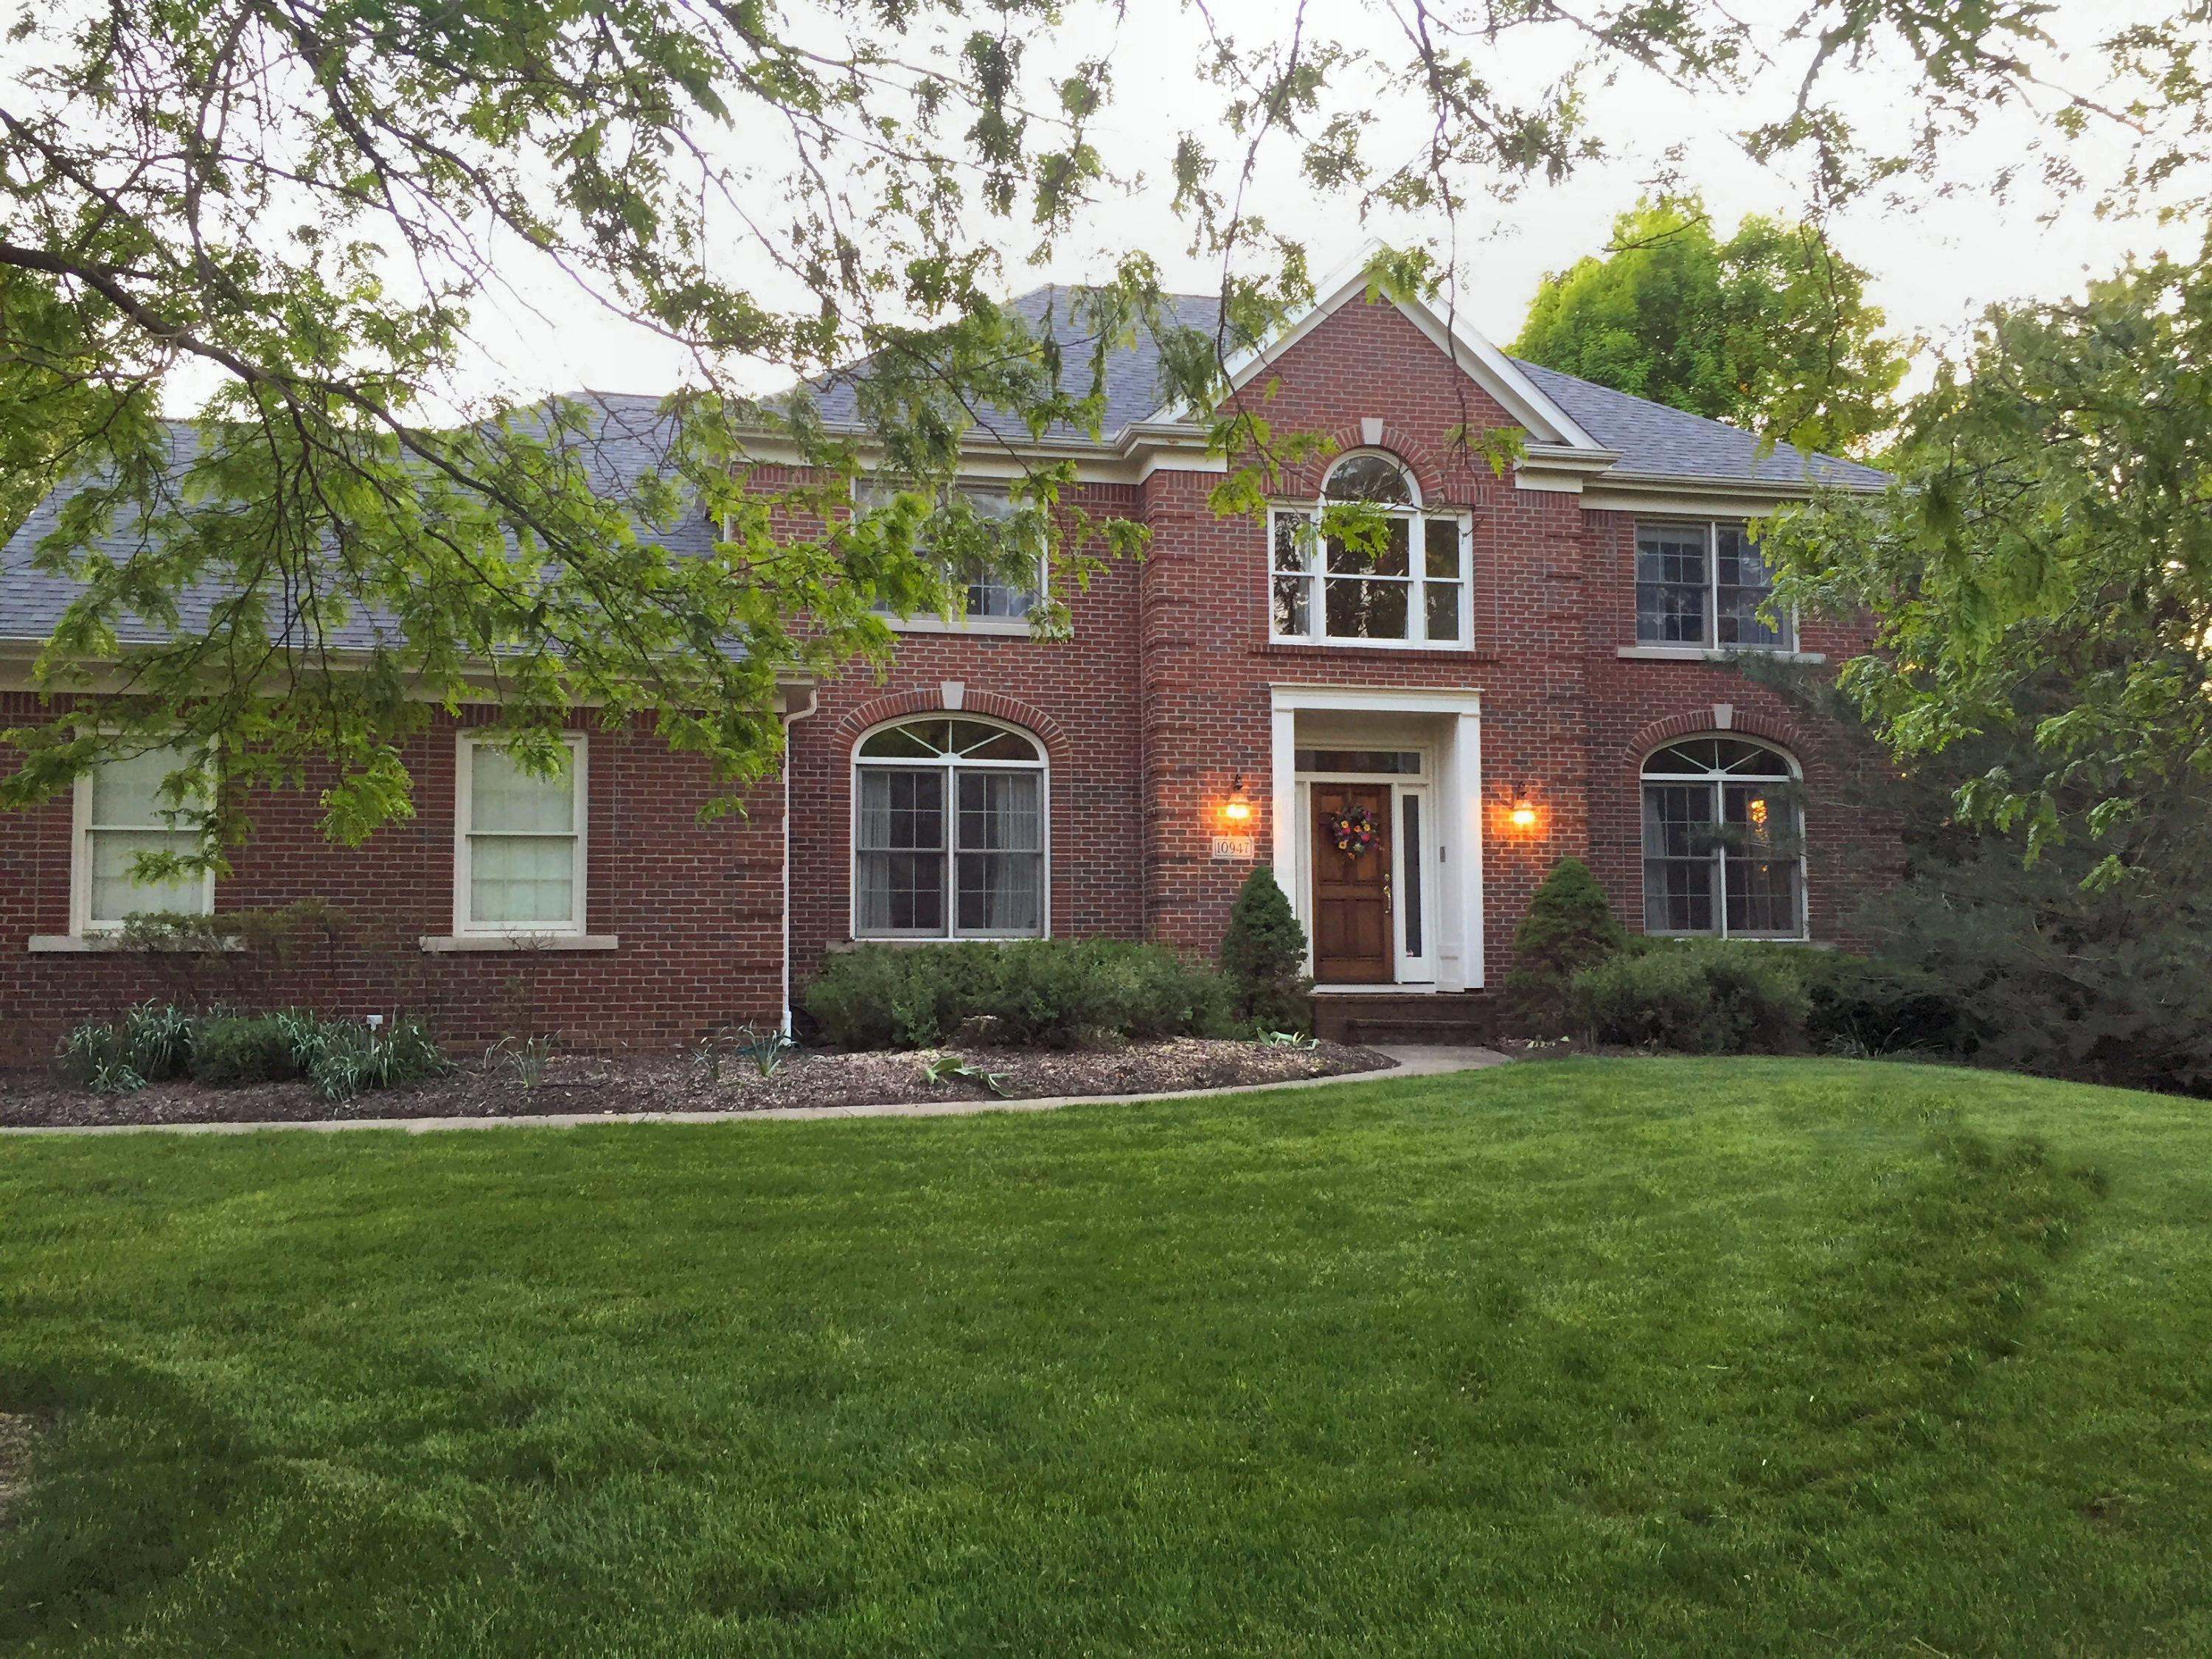 Photo of 10947 Hastings Lane, Powell, OH 43065